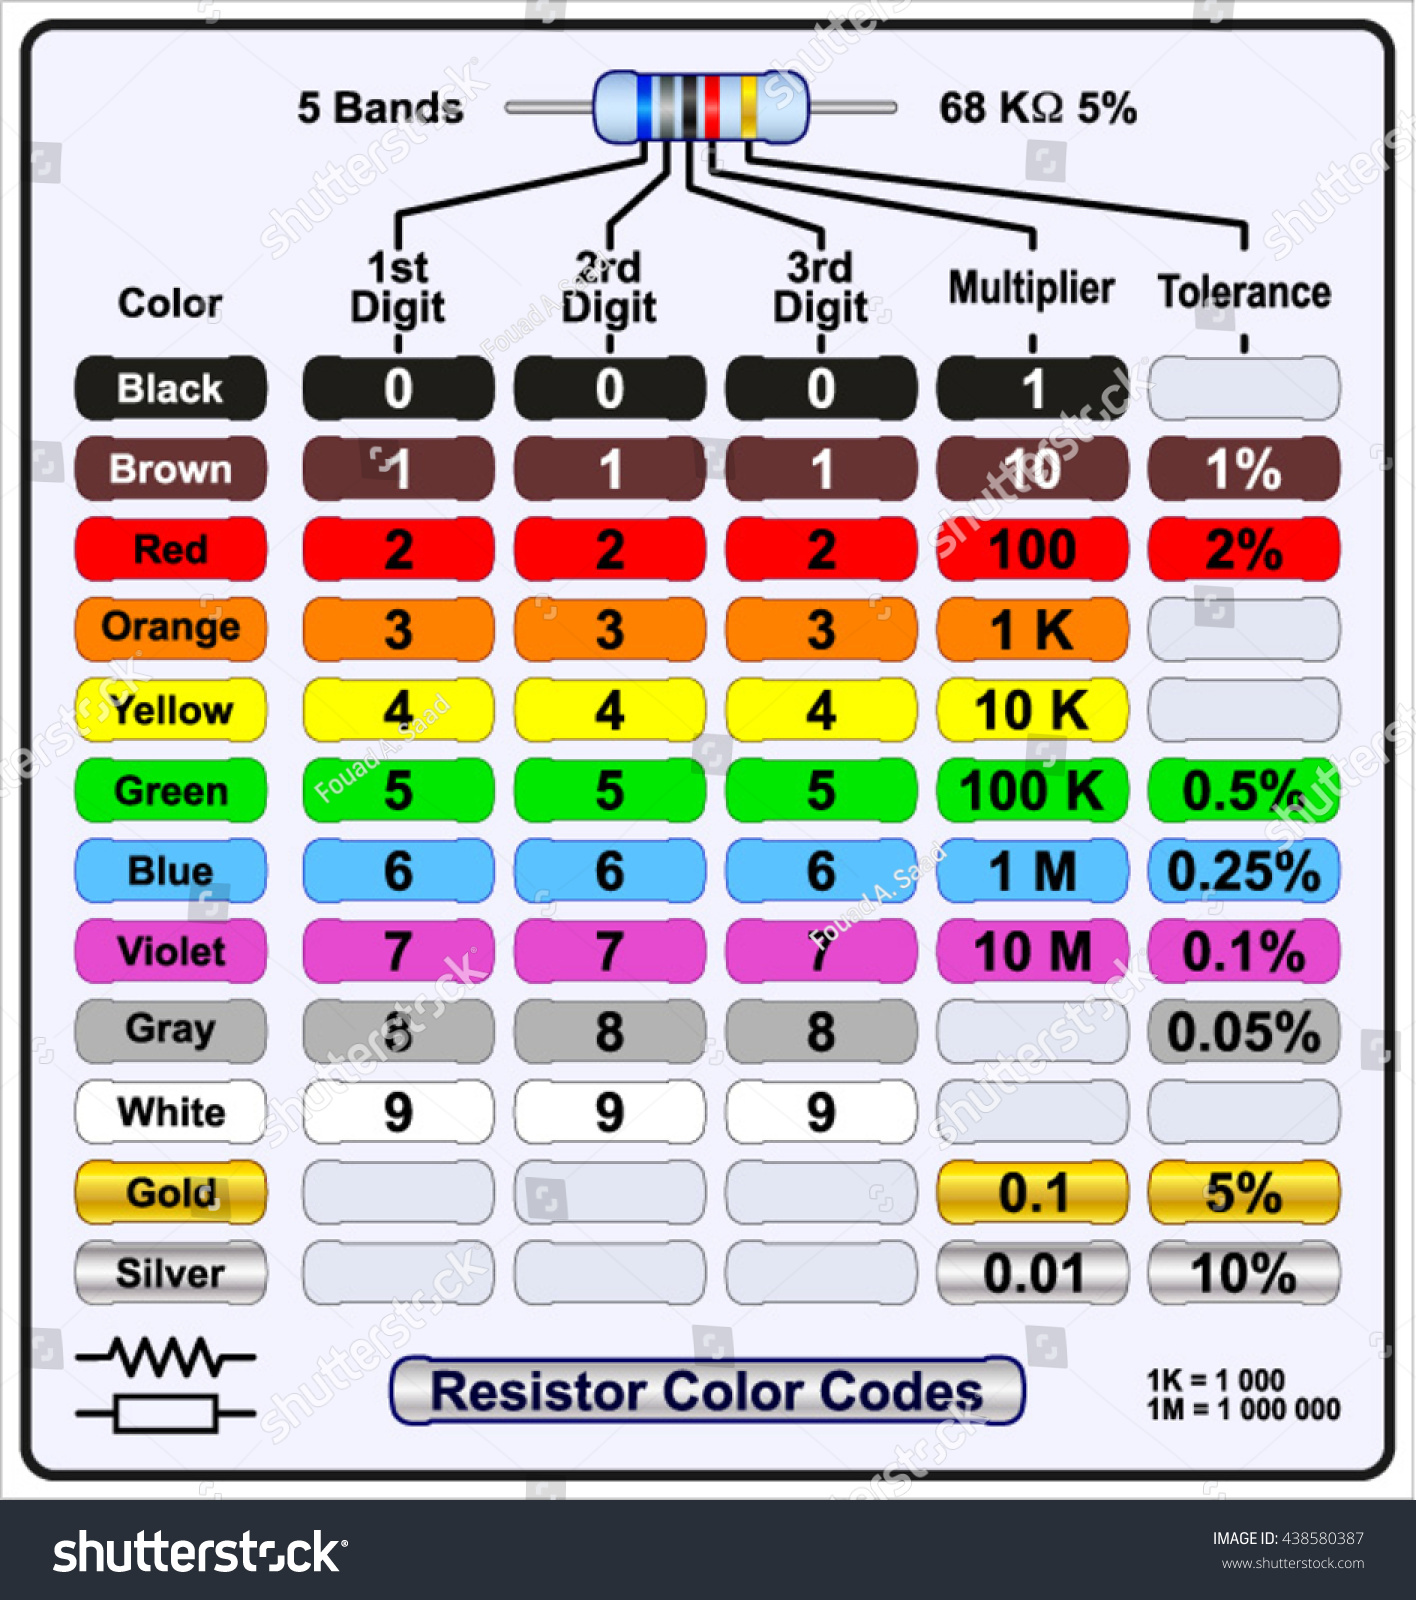 Five band resistor color code stock vector 438580387 shutterstock five band resistor color code nvjuhfo Choice Image